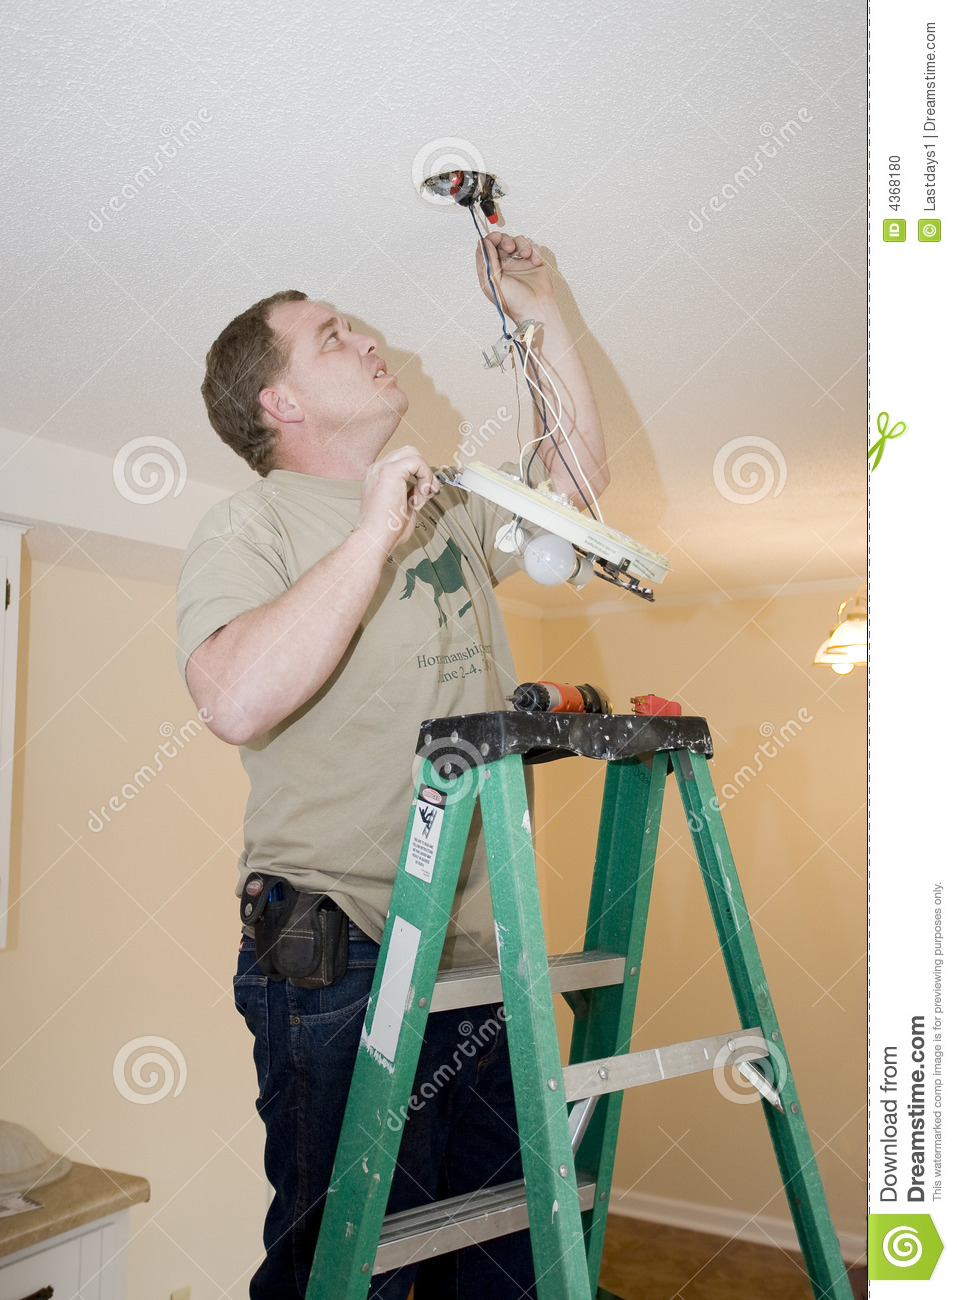 Electrician Working Stock Photo Image Of Reliable Repair 4368180 Tracing Wiring Behind Walls Problems With Ceiling Light Fixture